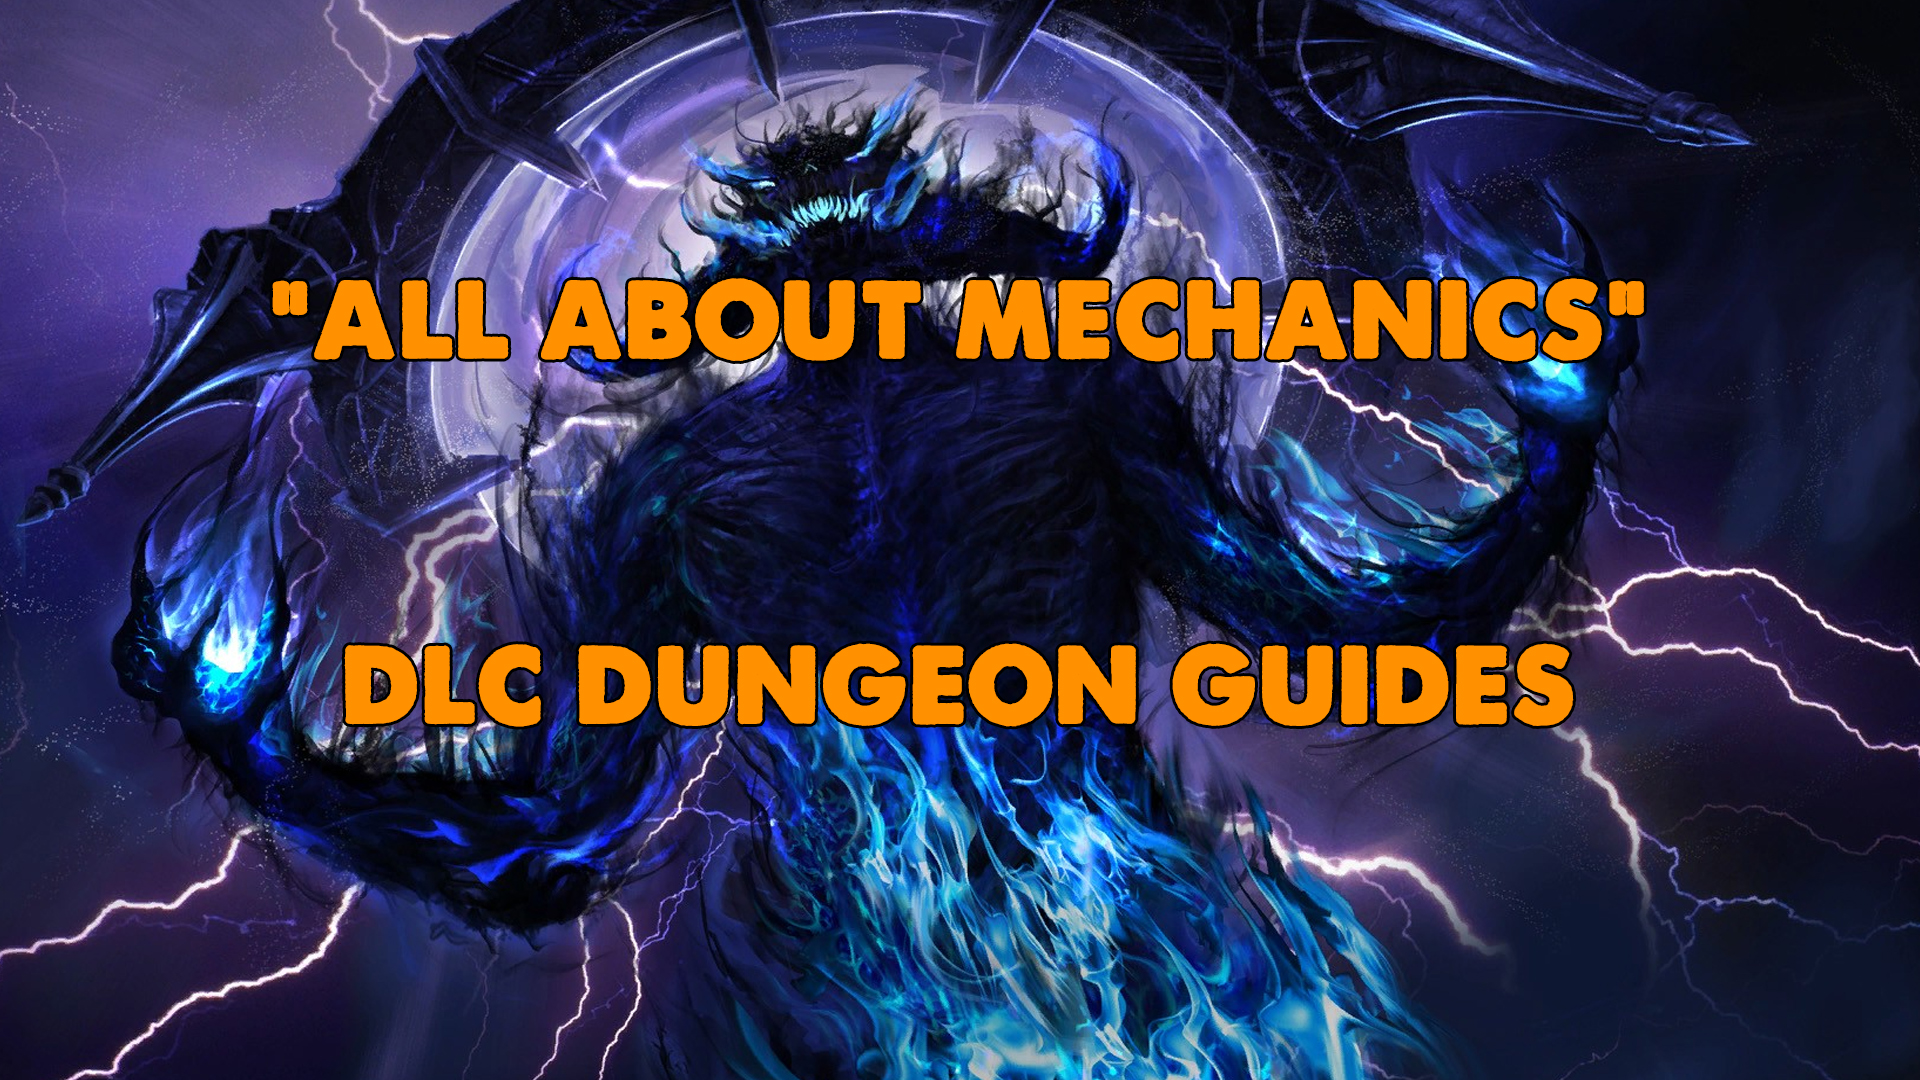 eso, dlc, eso dlc, eso dlc dungeons, eso dlc dungeon guides, dlc guide, dungeion guide, all about mechanics dungeon guides